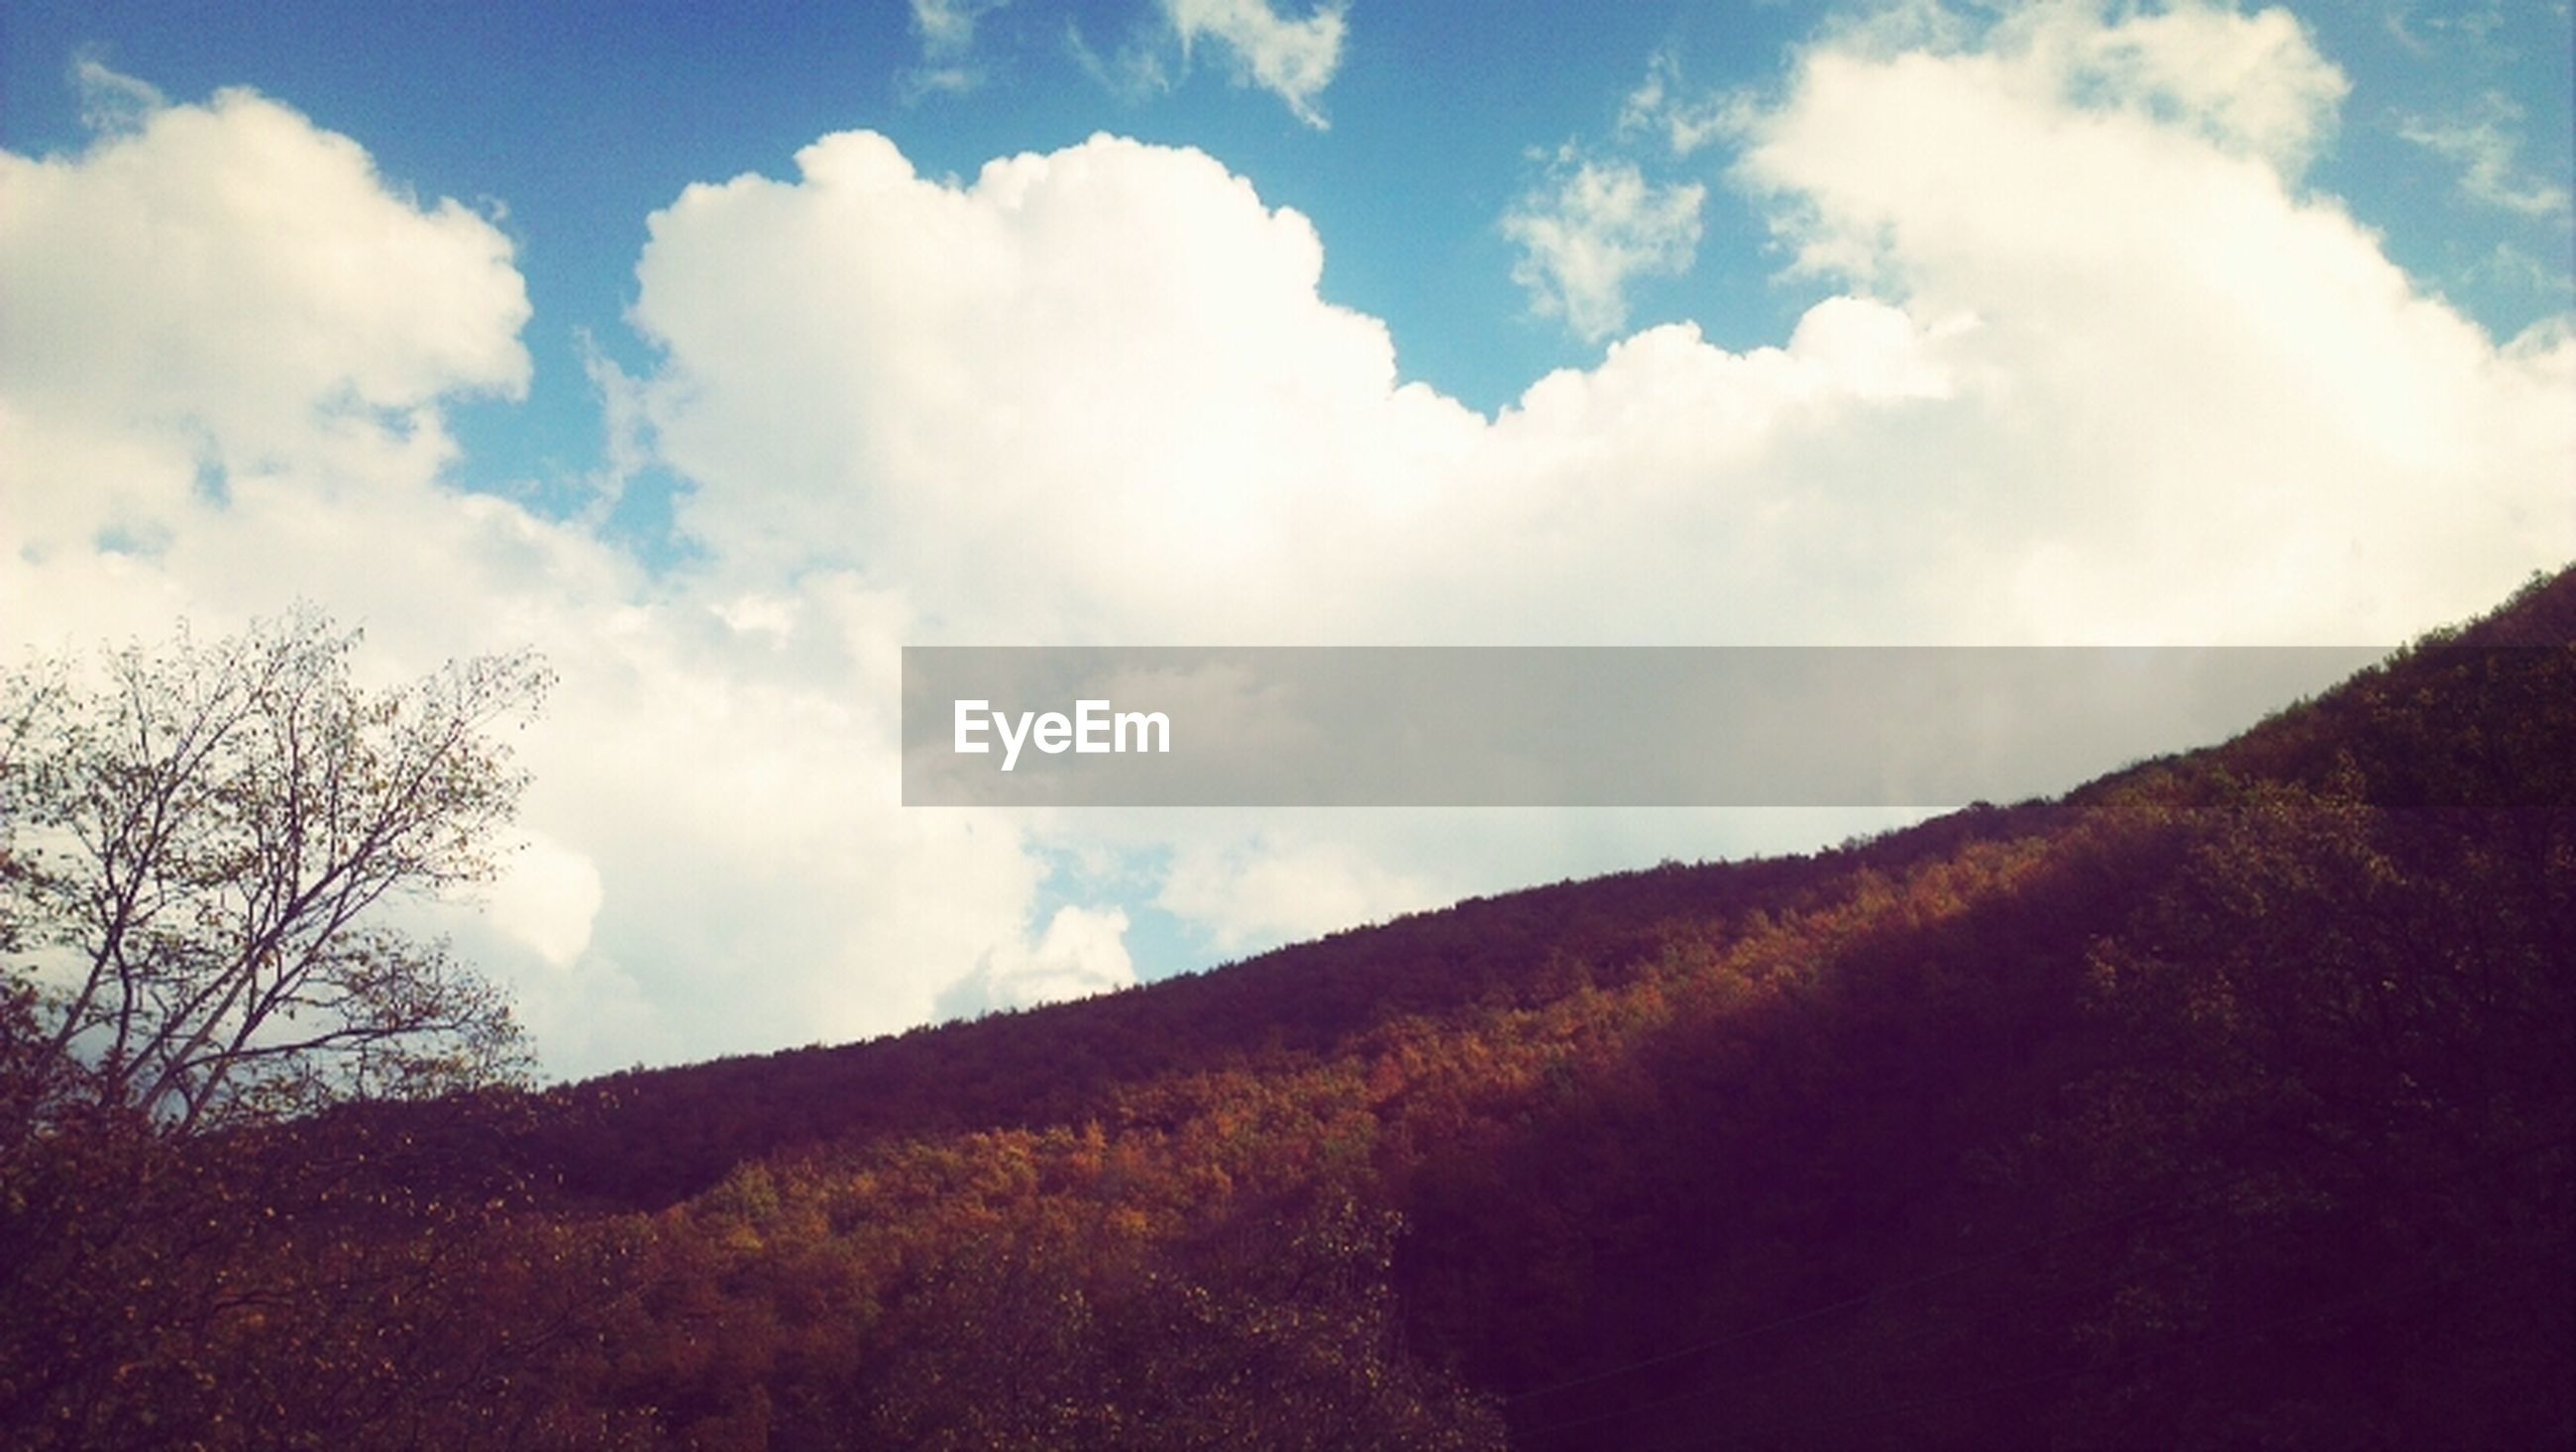 sky, tranquility, tranquil scene, tree, scenics, beauty in nature, cloud - sky, mountain, nature, cloud, landscape, cloudy, low angle view, mountain range, non-urban scene, idyllic, day, growth, outdoors, forest